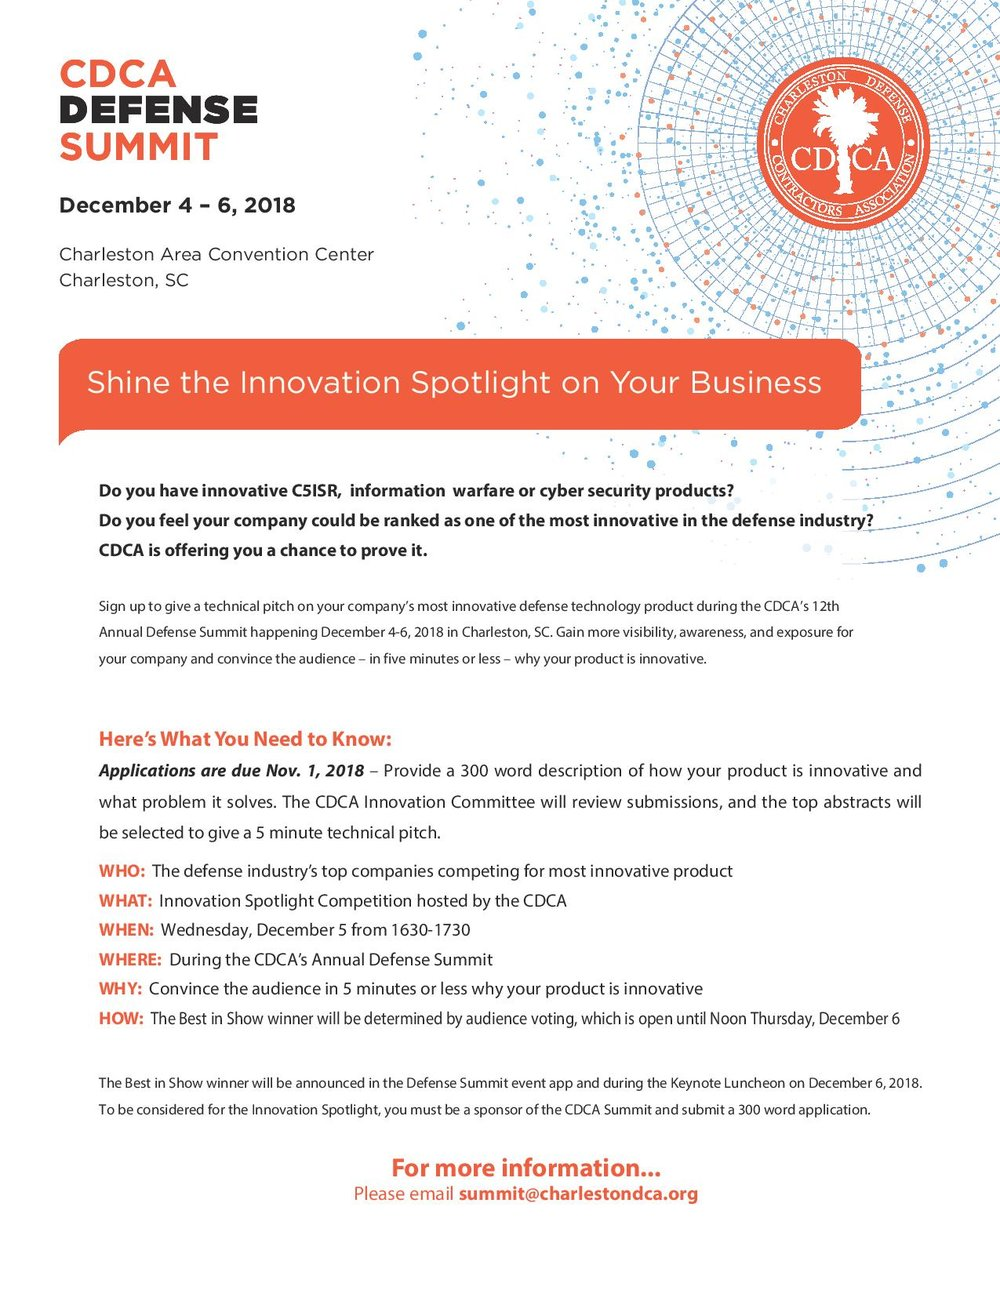 CDCA_InnovationSpotlight_flyer_v4_fillable_4-page-001.jpg